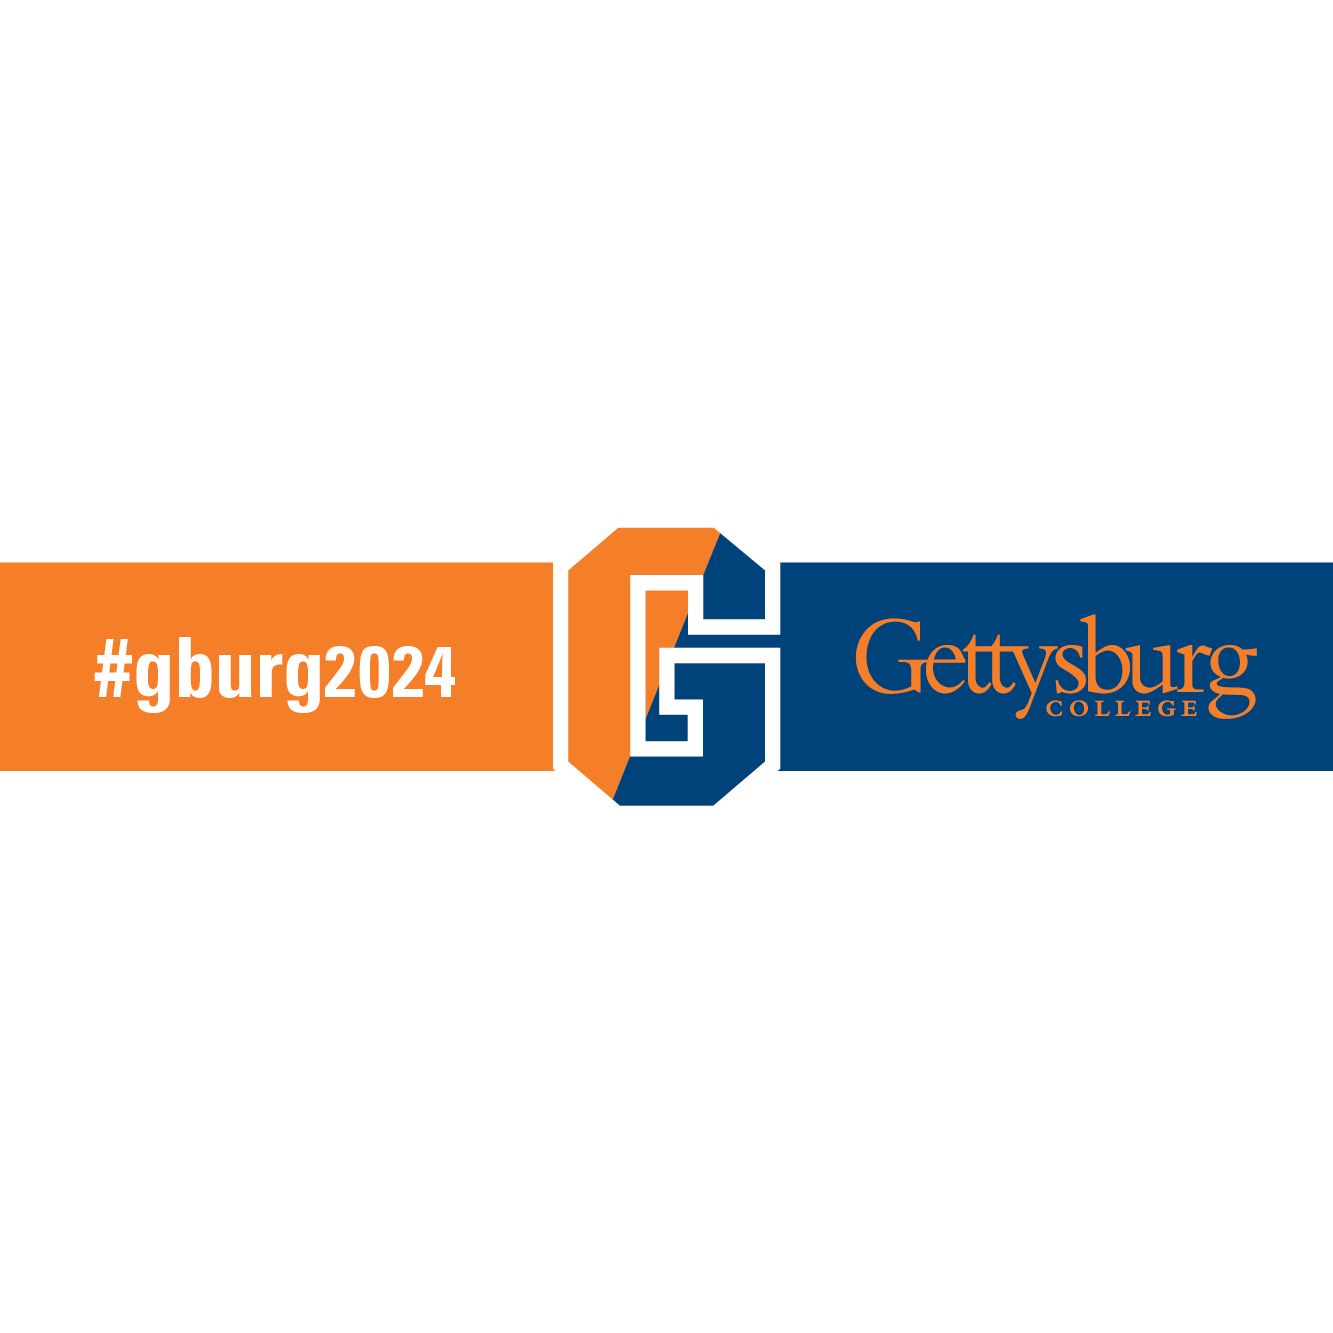 Gettysburg College facebook photo frame with white outline and transparent background